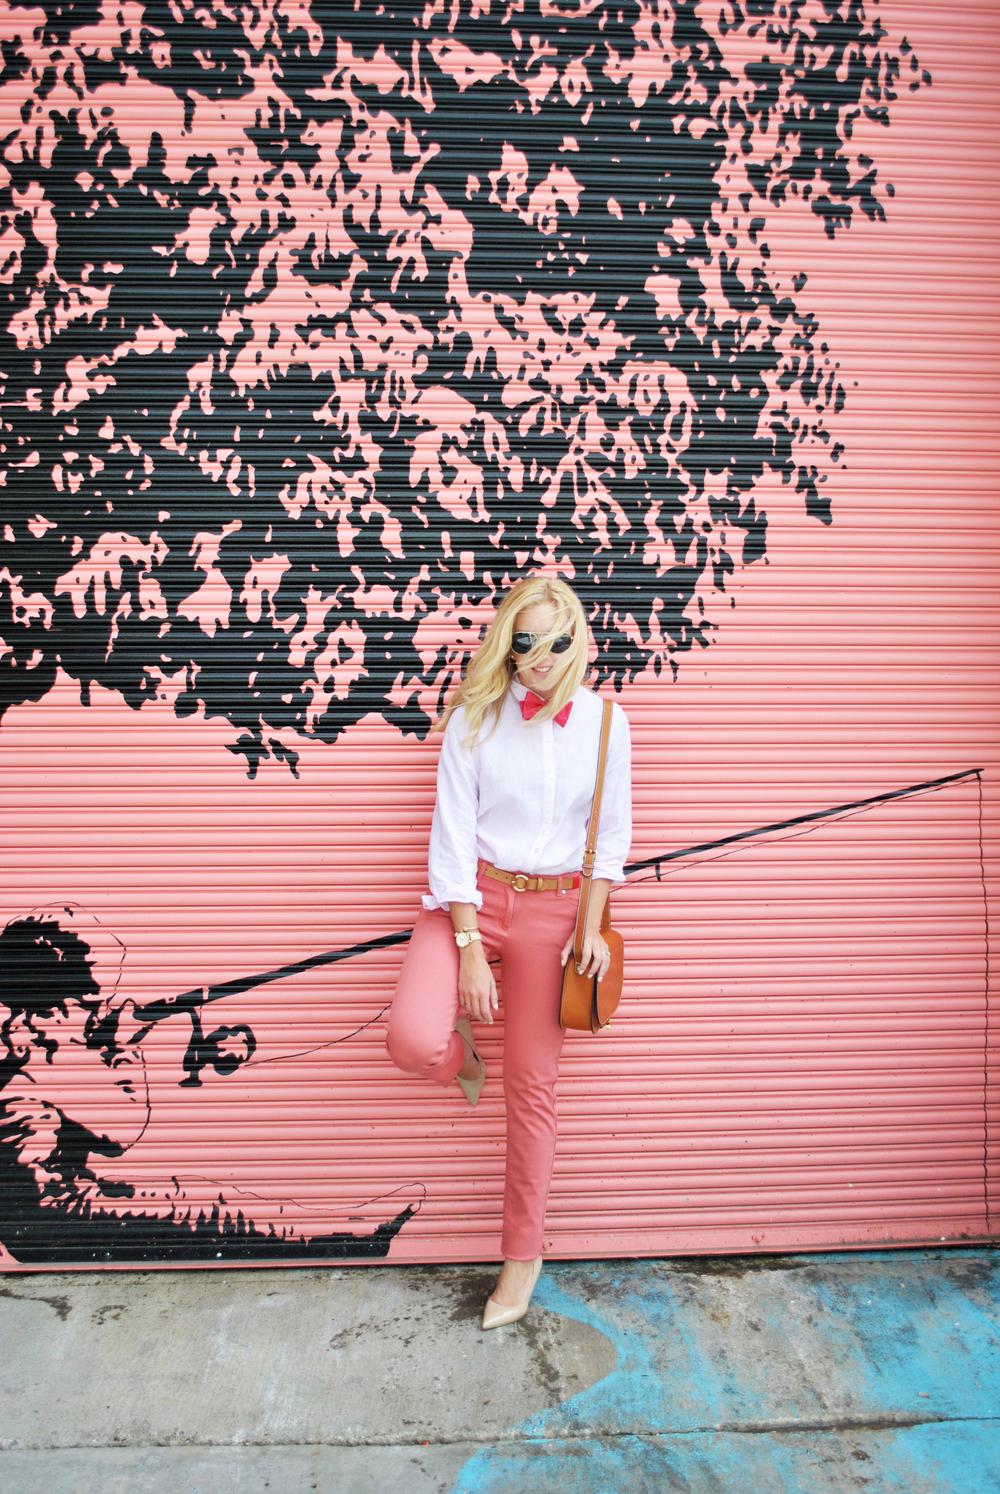 thoughtfulwish | preppy // school outfit // pink outfit // peach outfit // bowtie // j. mclaughlin // blonde fashion // fashion blogger // boston prep // boston fashion // new england fashion